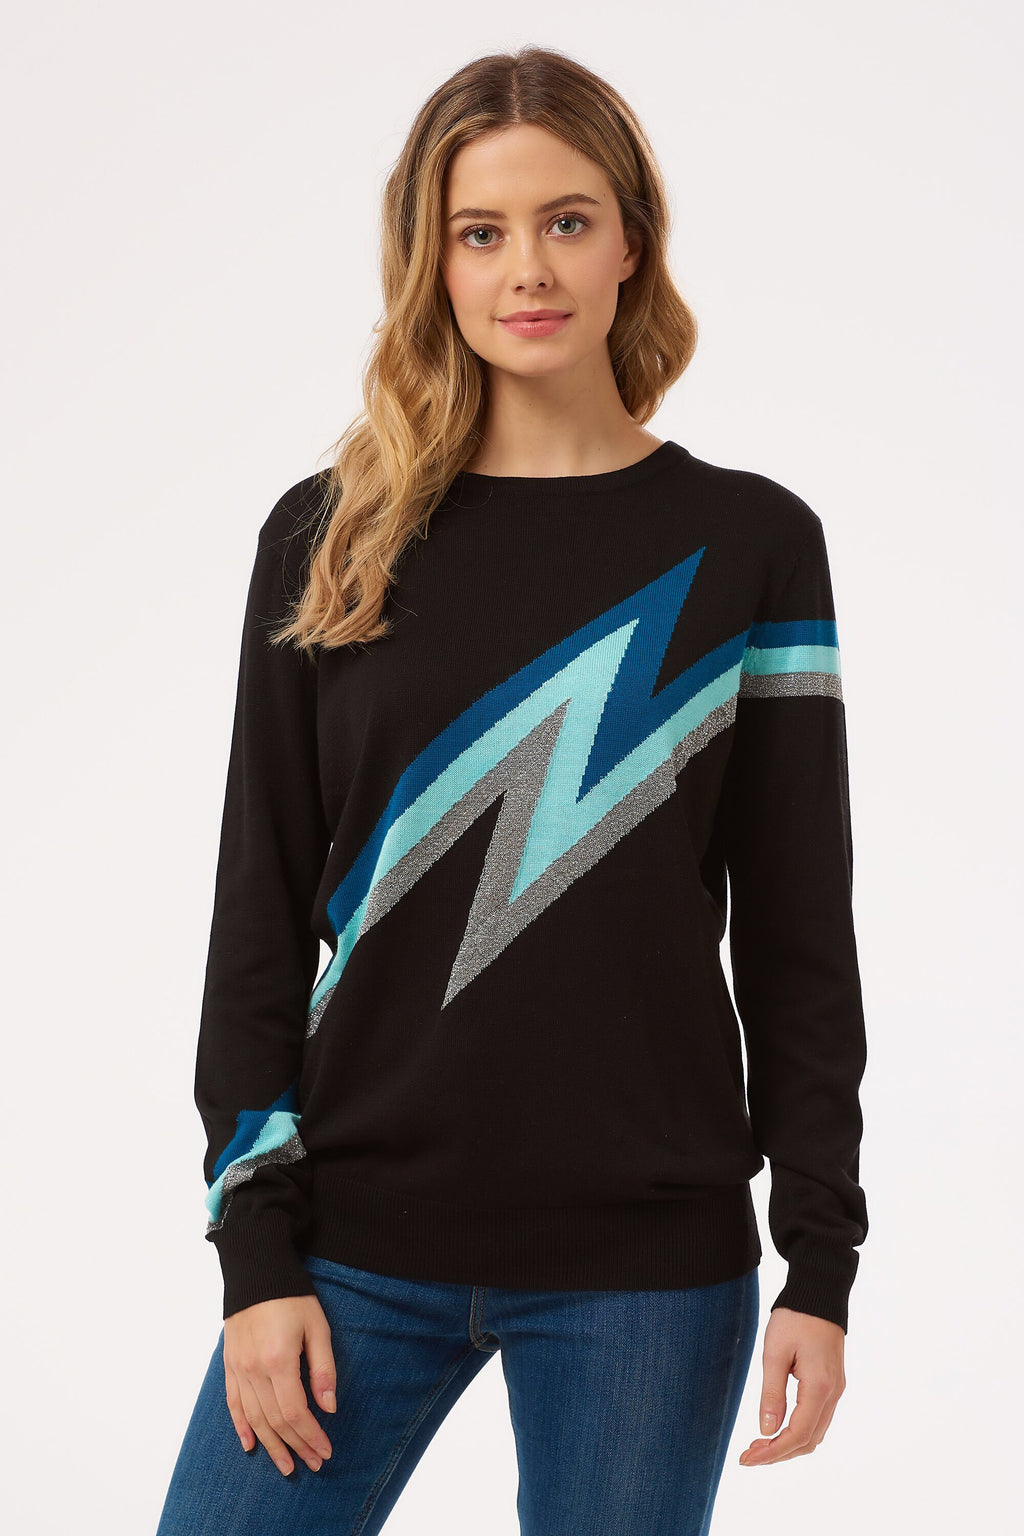 Rita Zap! Lightning Bolt Sweater